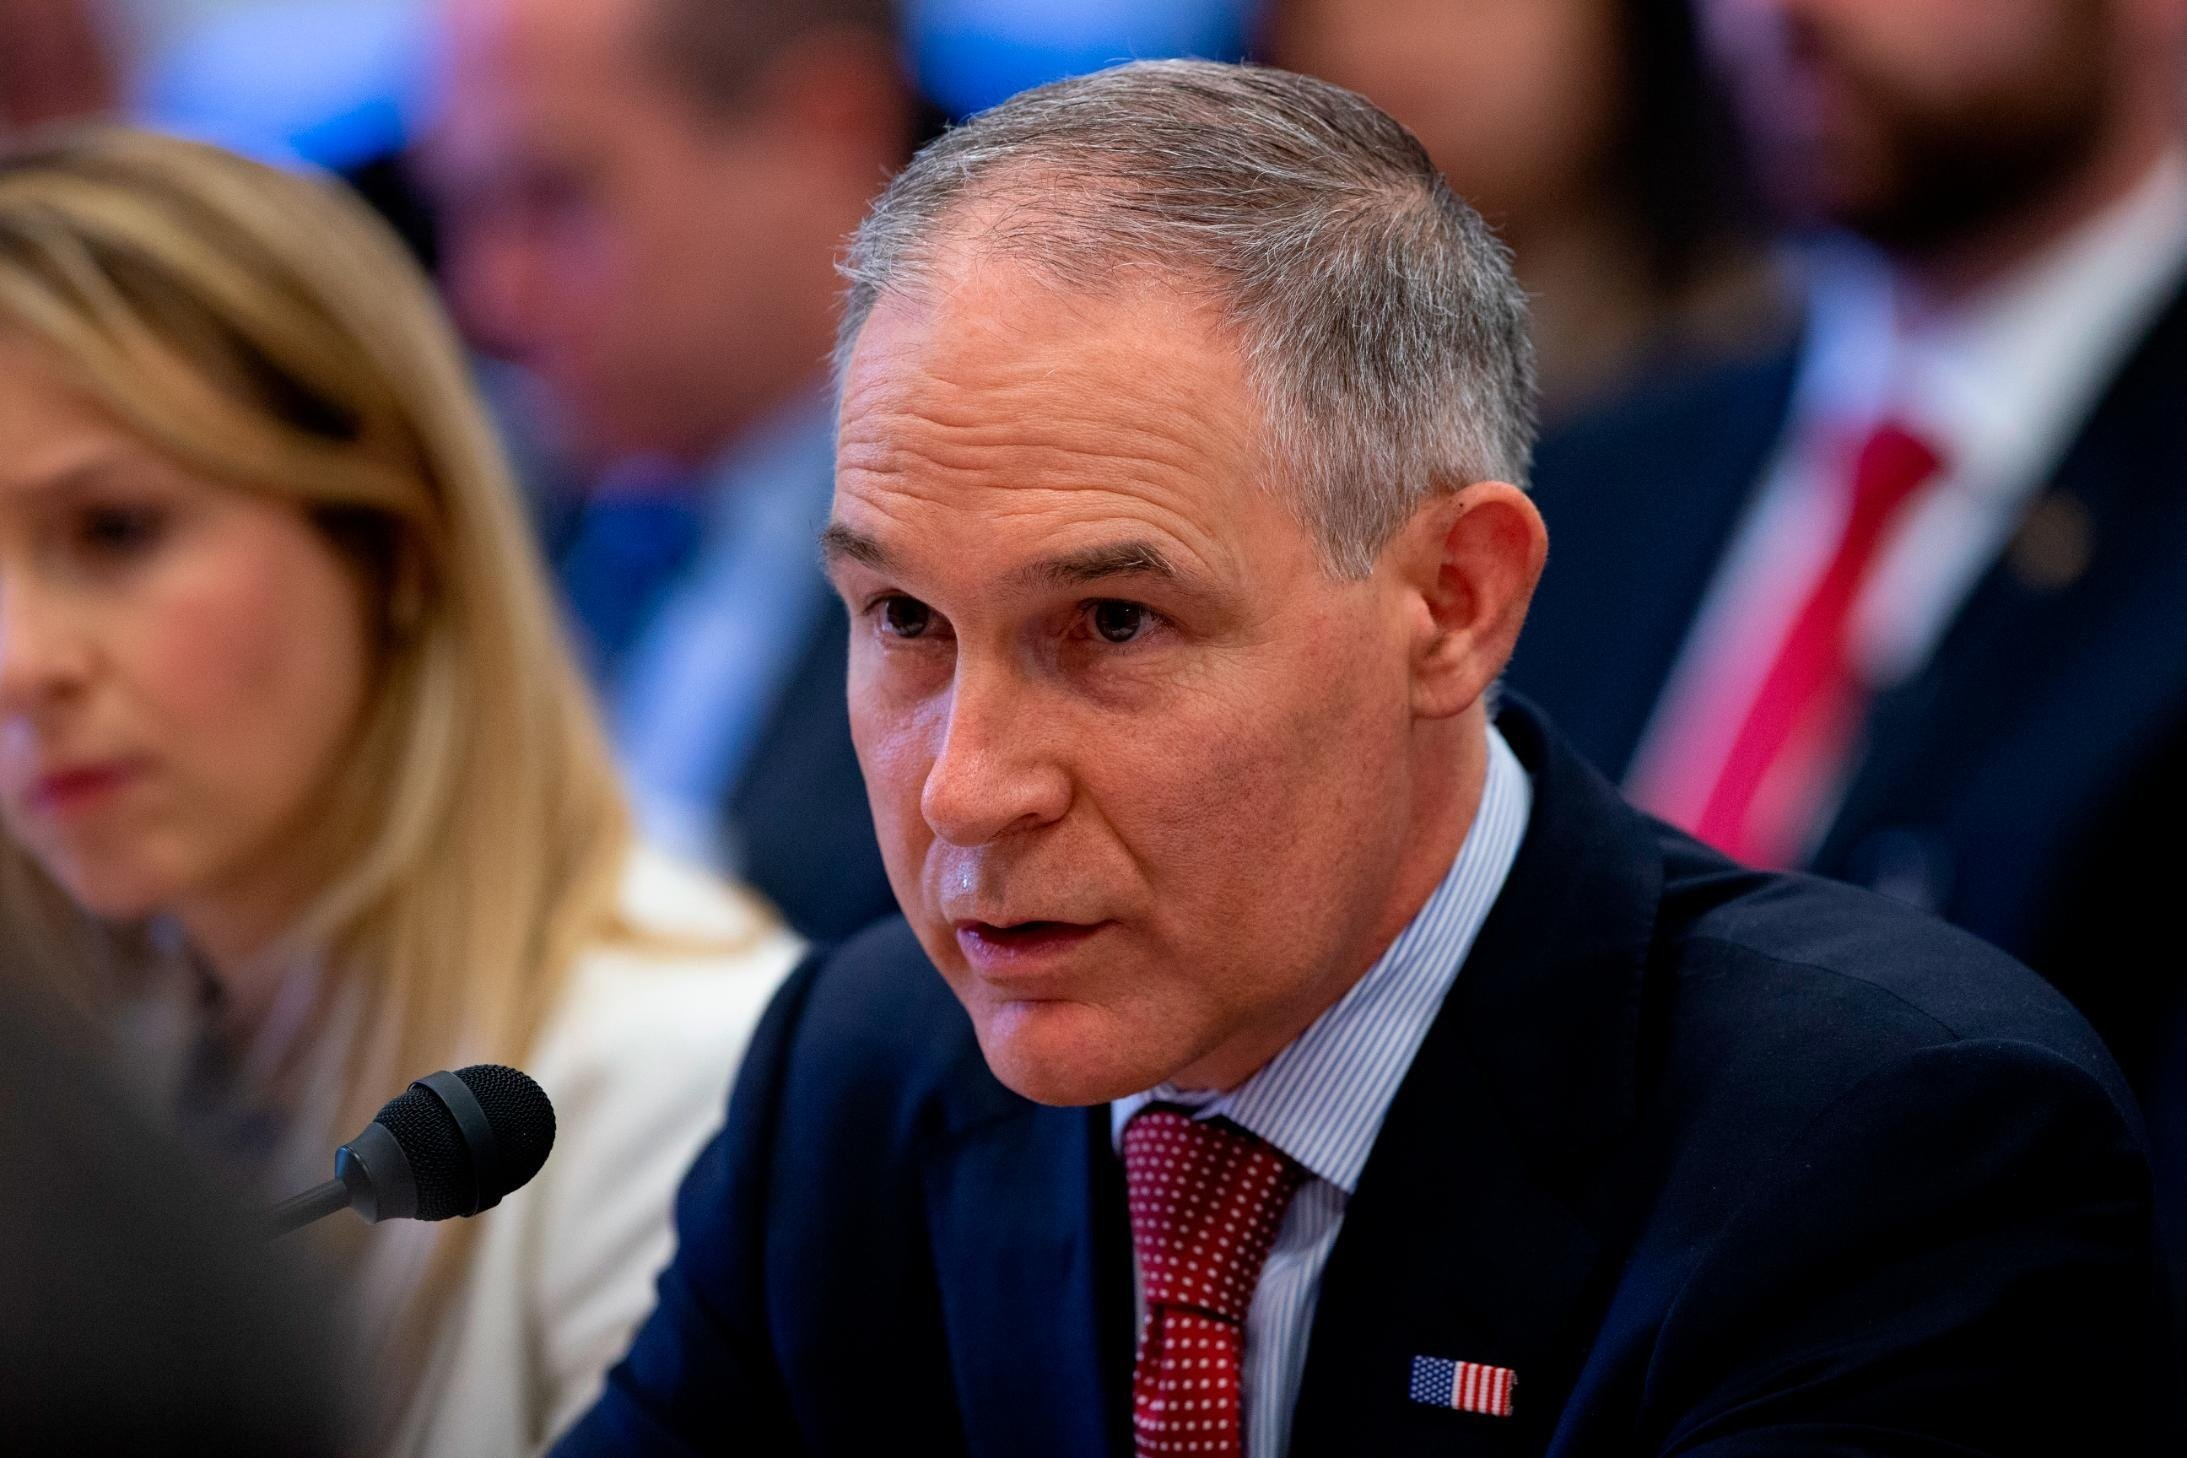 Scott Pruitt, the embattled administrator of the Environmental Protection Agency, is expected to face questions about his spending and alleged ethical transgressions at a Capitol Hill hearing Wednesday on the agency's budget.